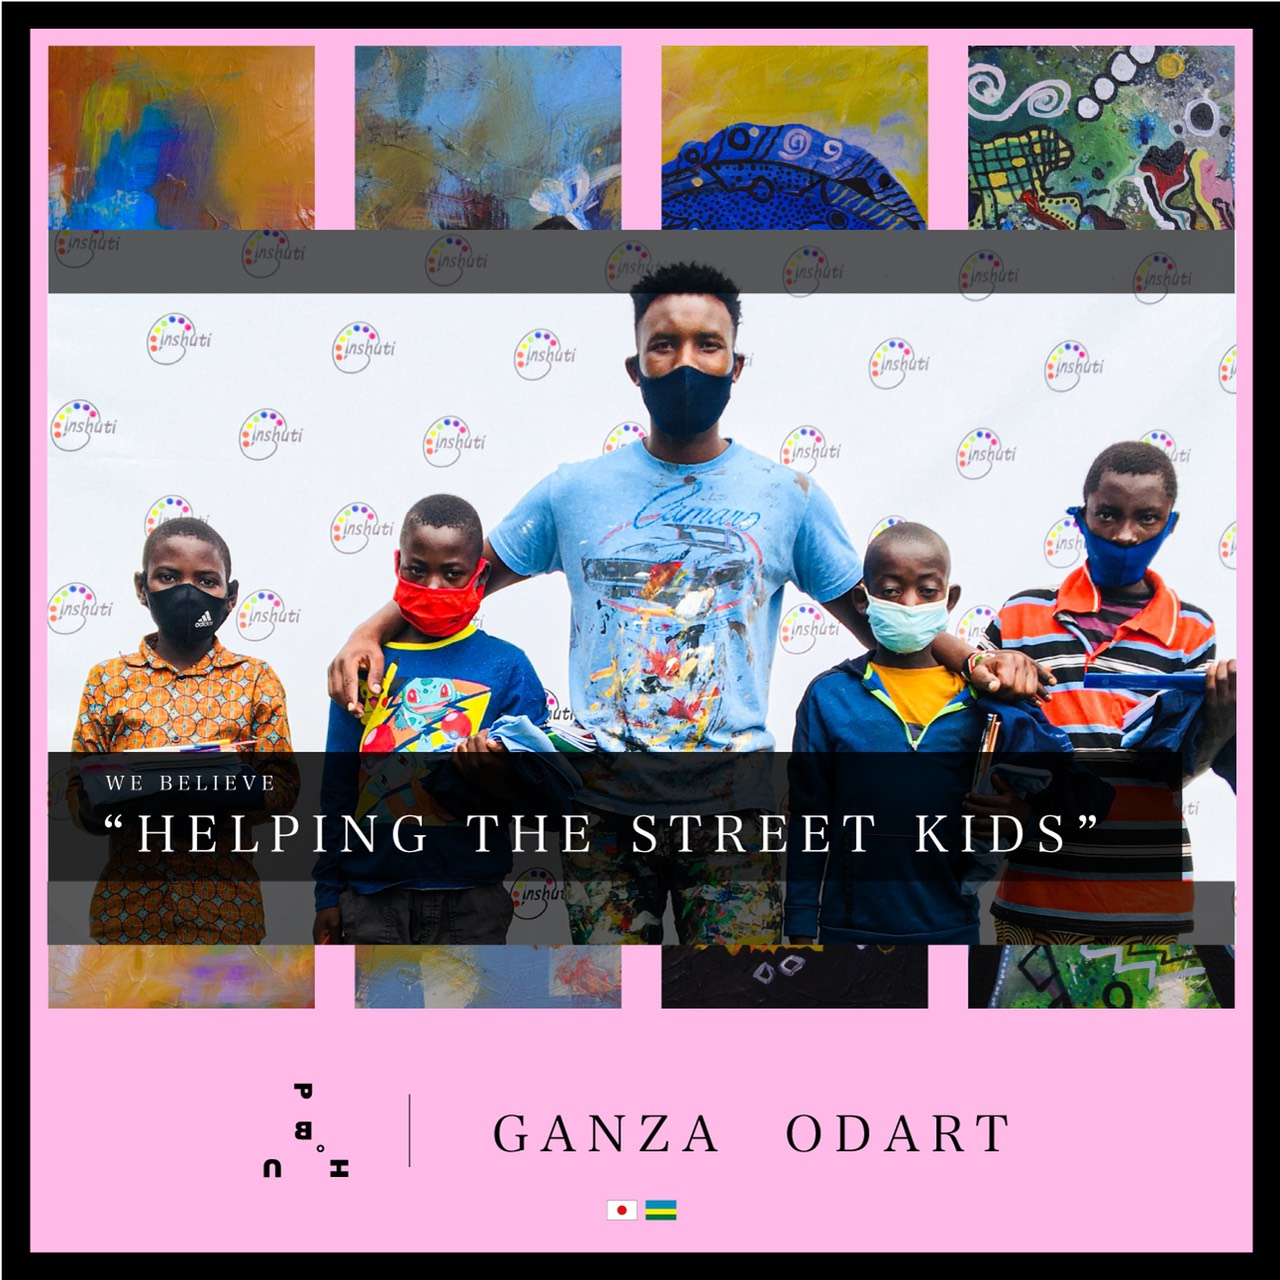 Ganza Odart's projects include aiding children through his art and introducing art to communities